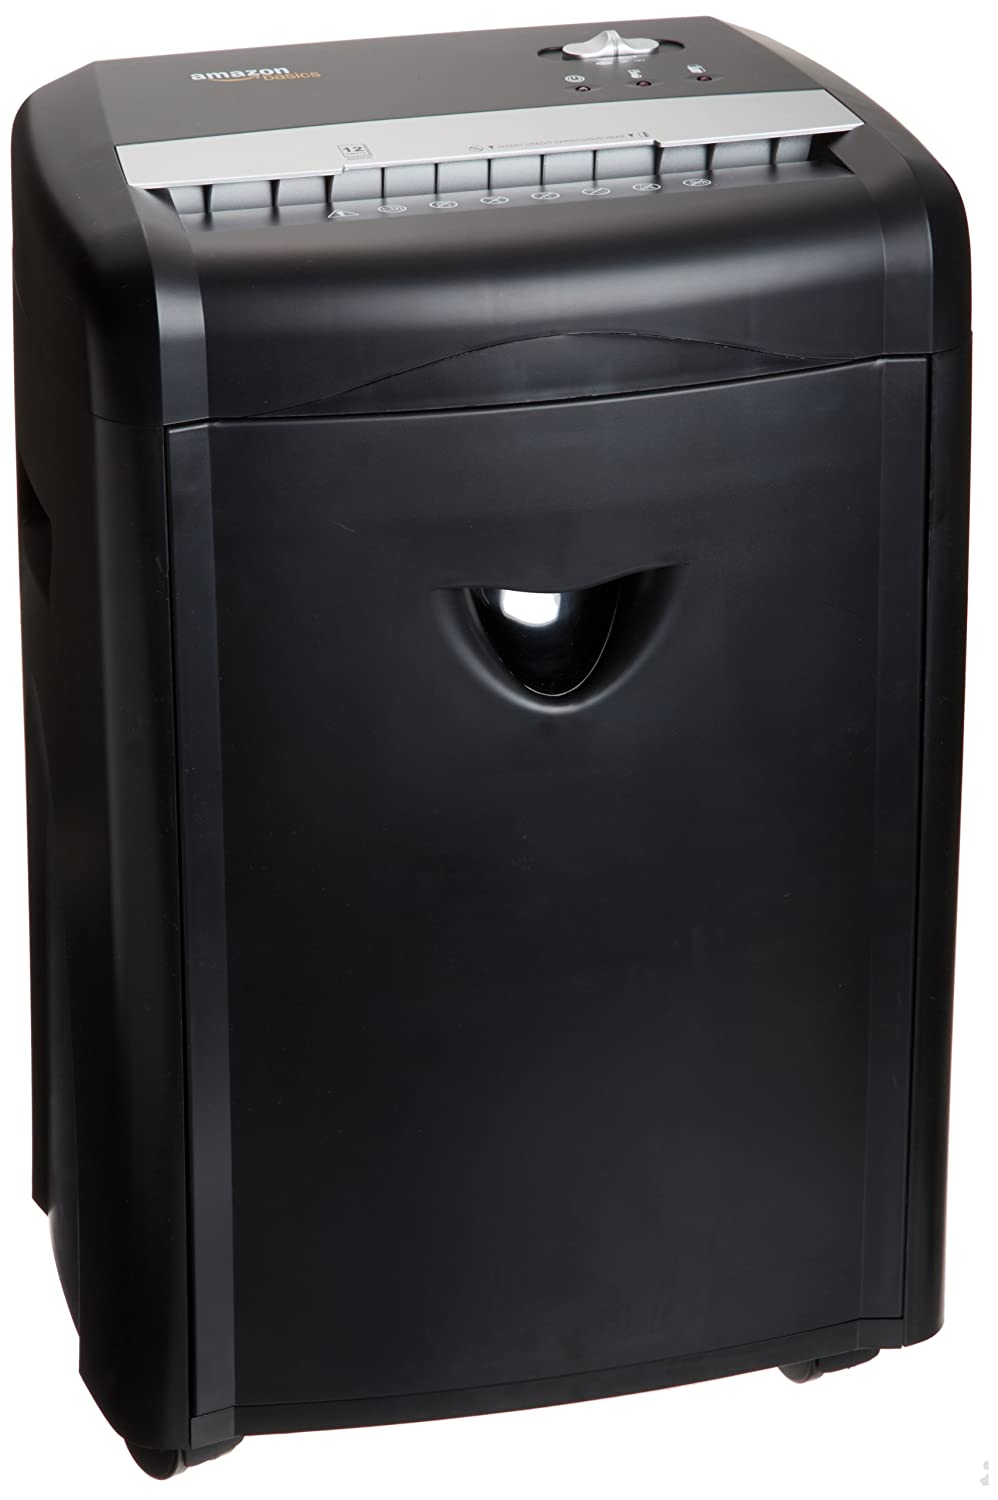 The Best Paper Shredder Reviews - Expert Recommendation & Buying Guide 2